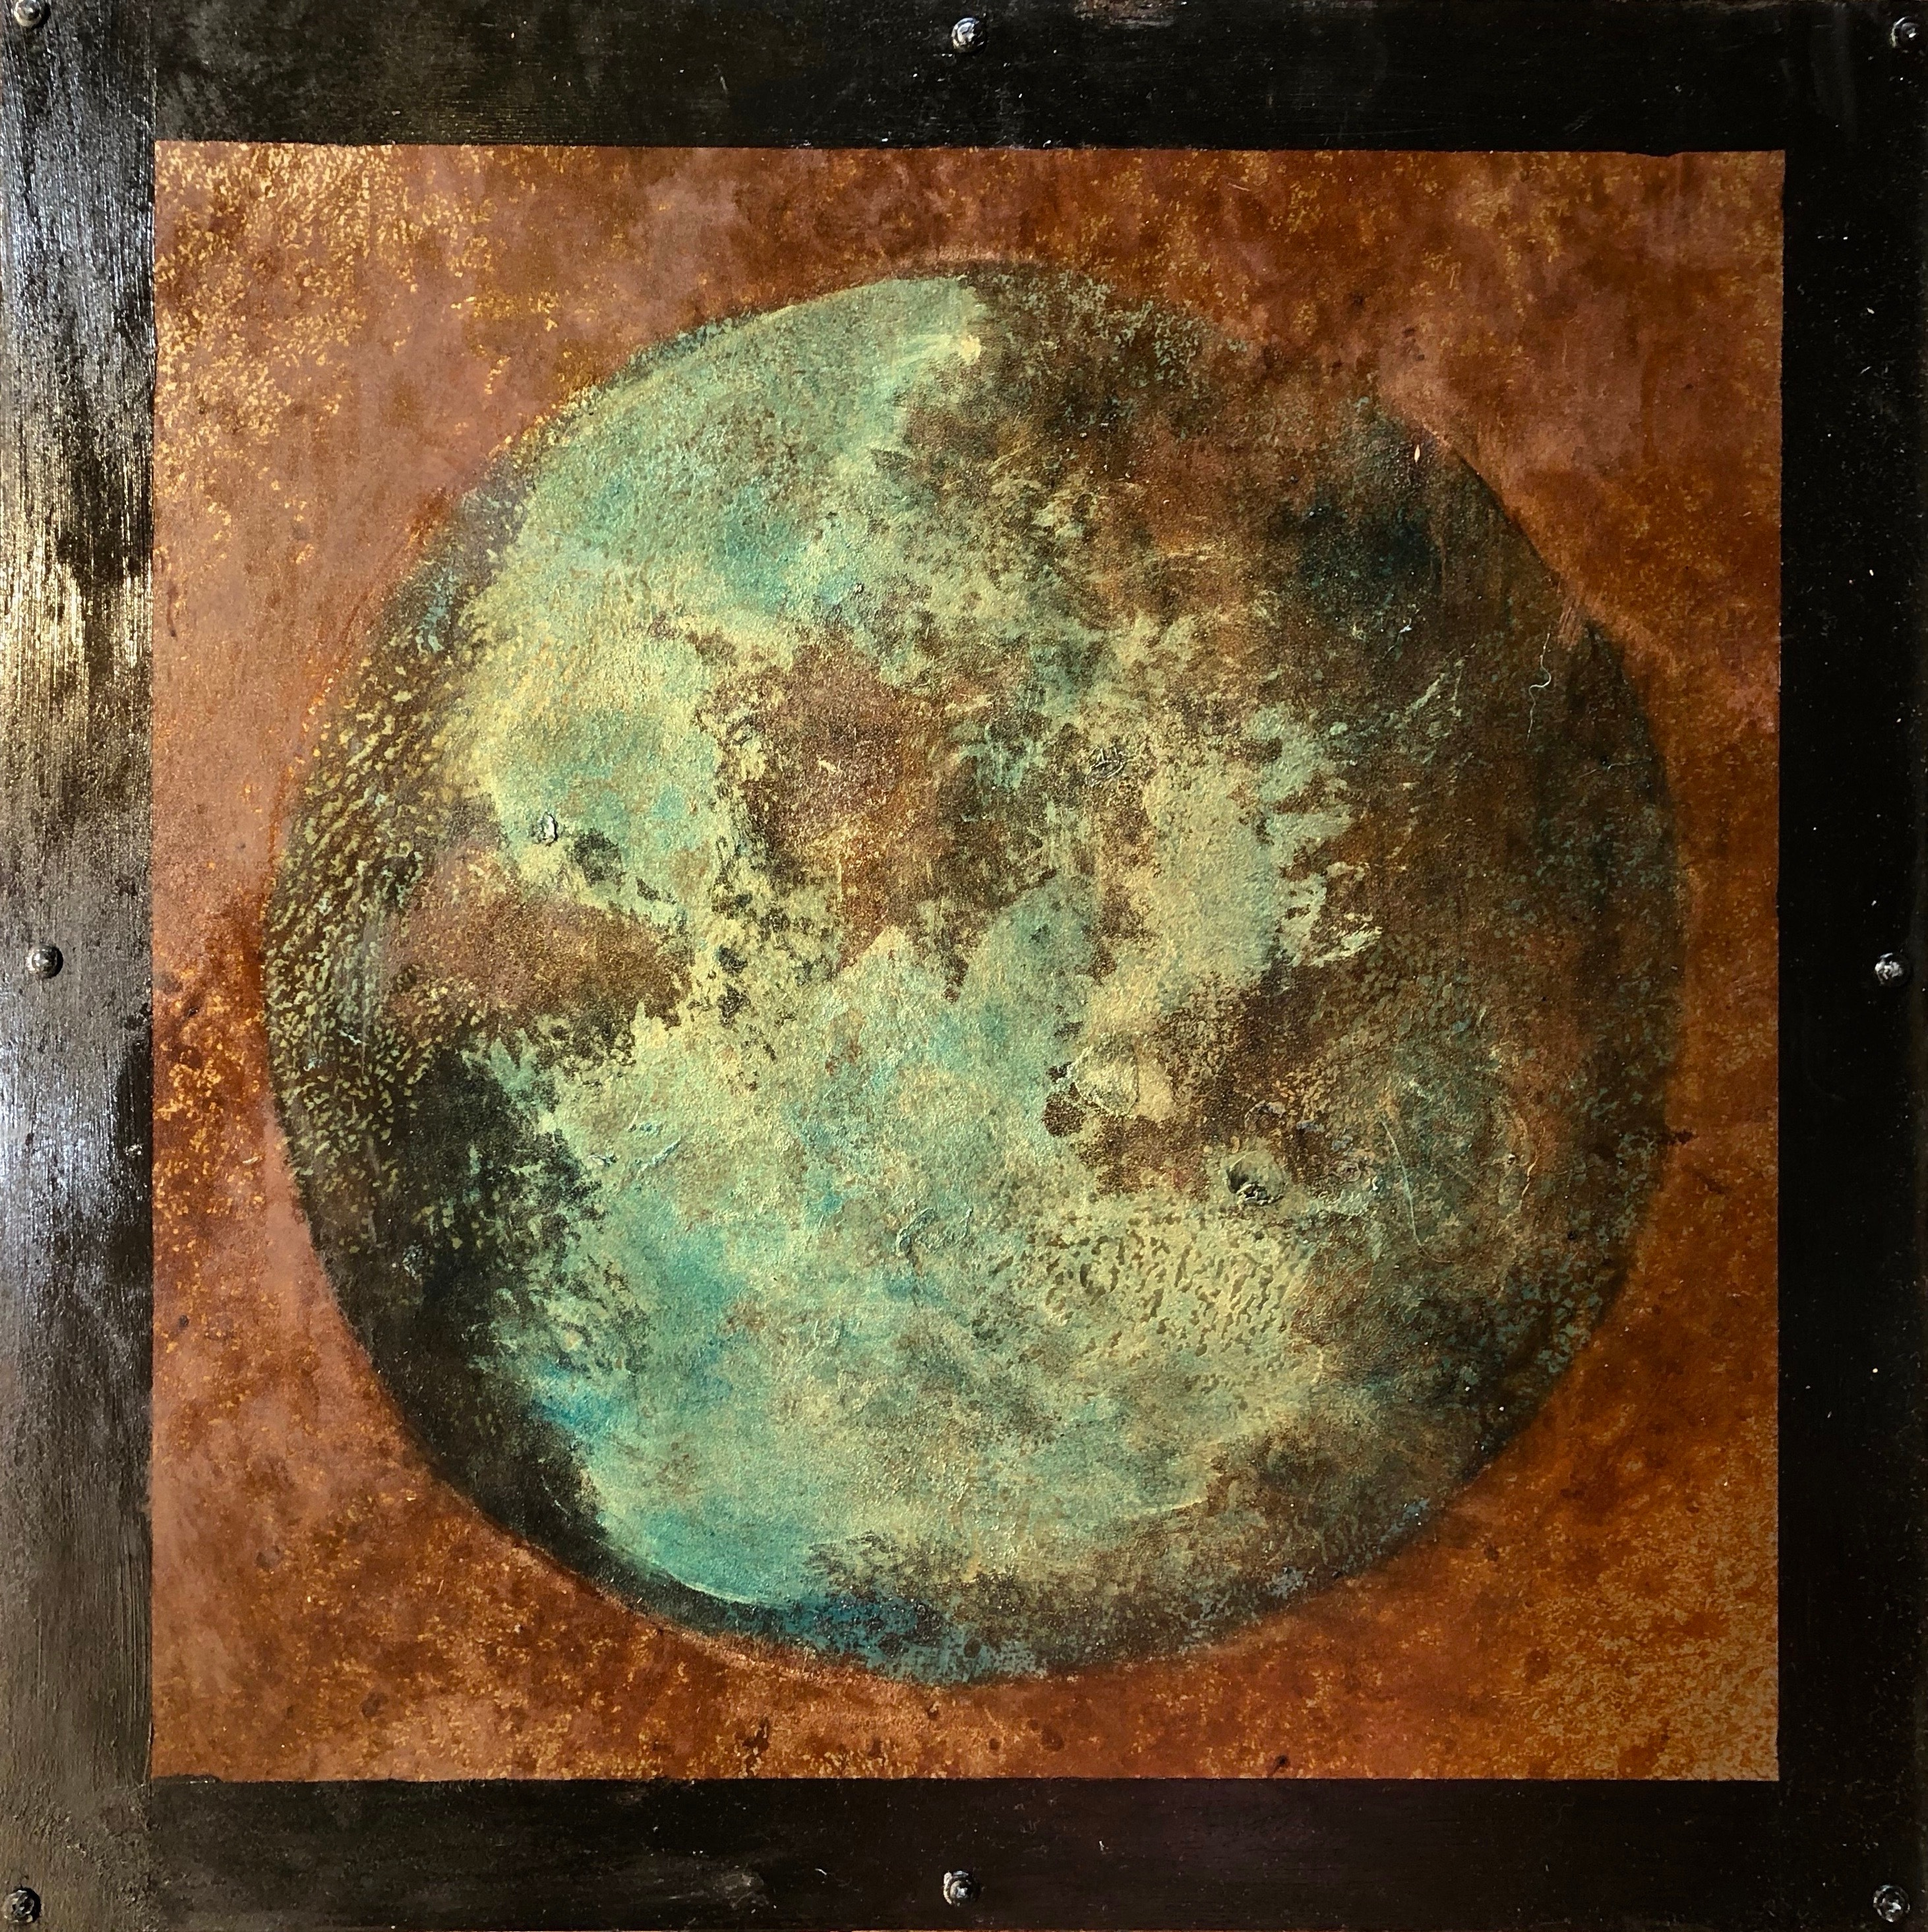 Planetary series 123 24x24 rust and oil on steel over wood hw1xmx